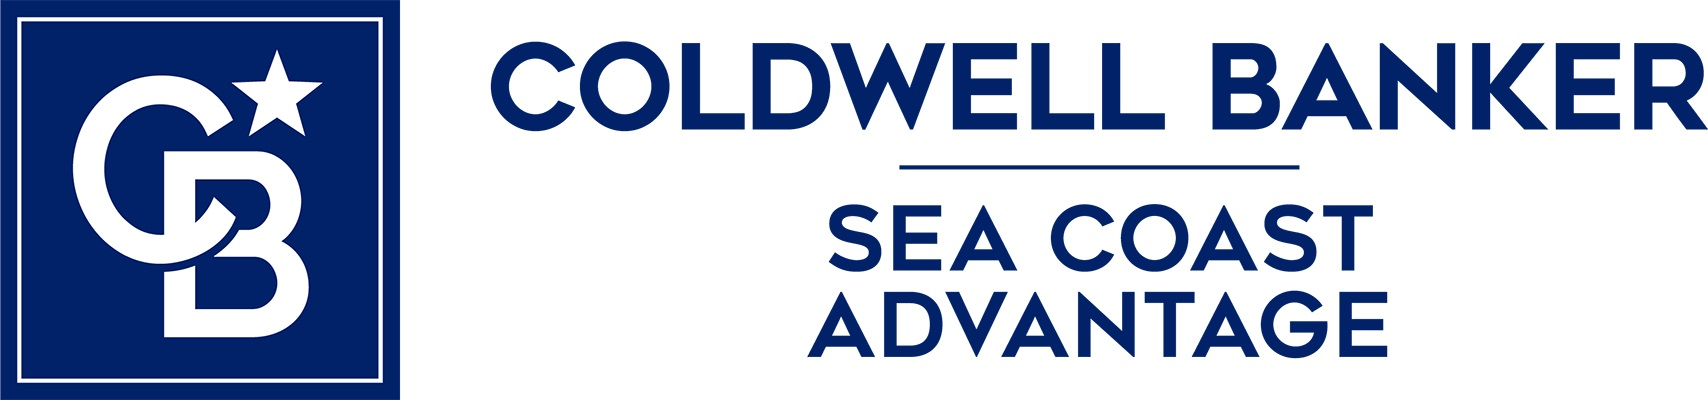 Julie Postma - Coldwell Banker Sea Coast Advantage Realty Logo